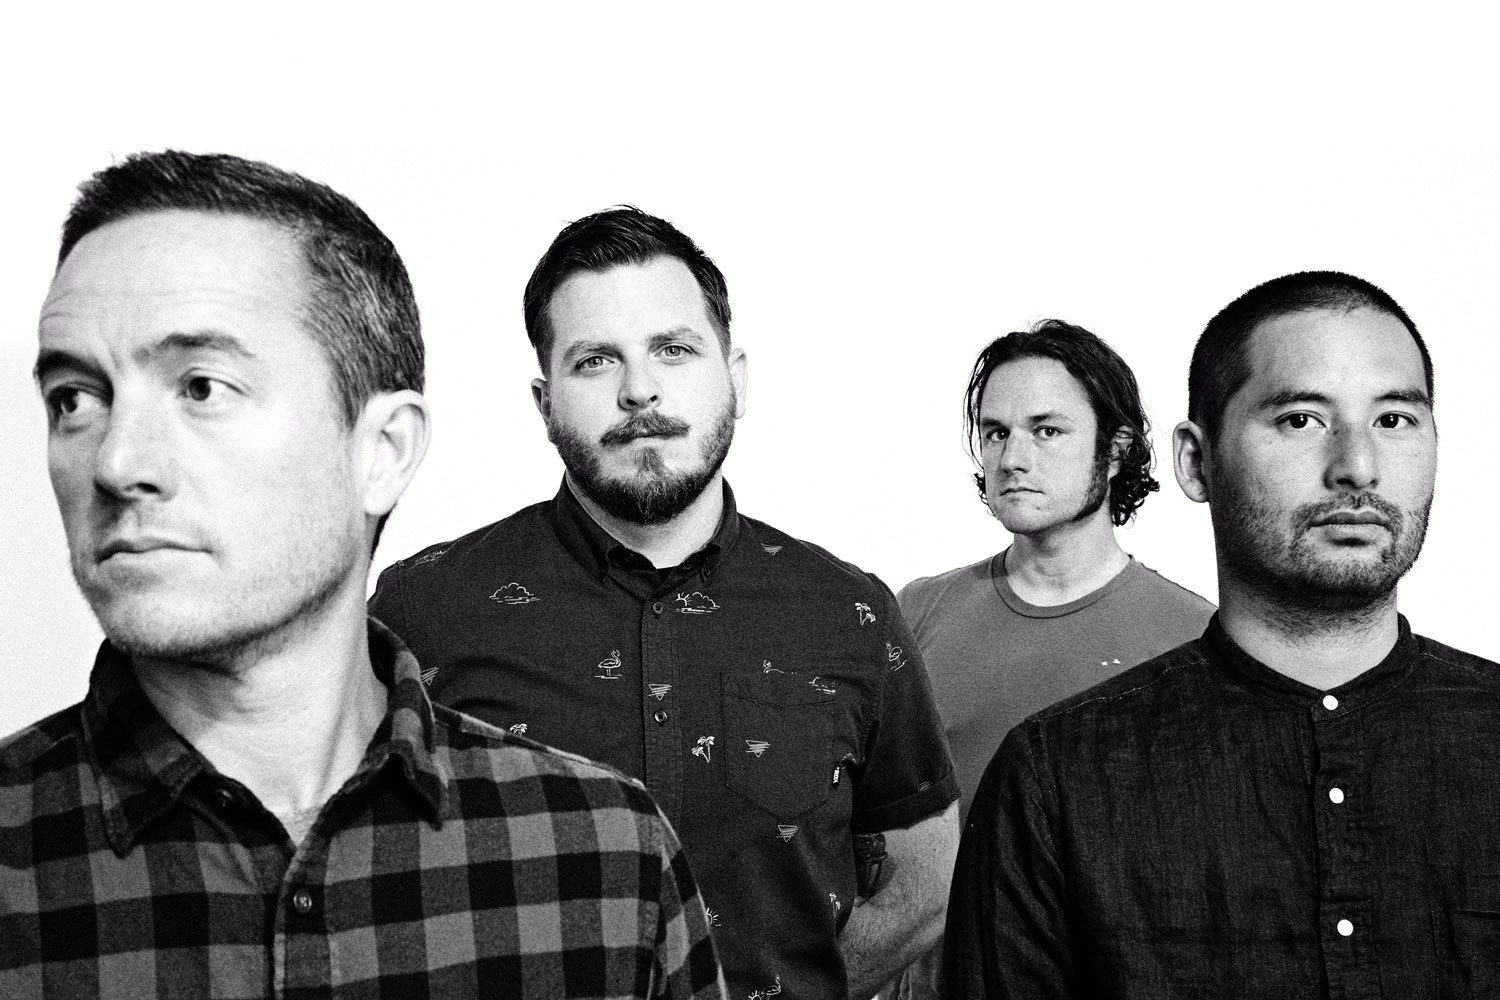 Thrice and Refused are teaming up for a UK co-headline tour